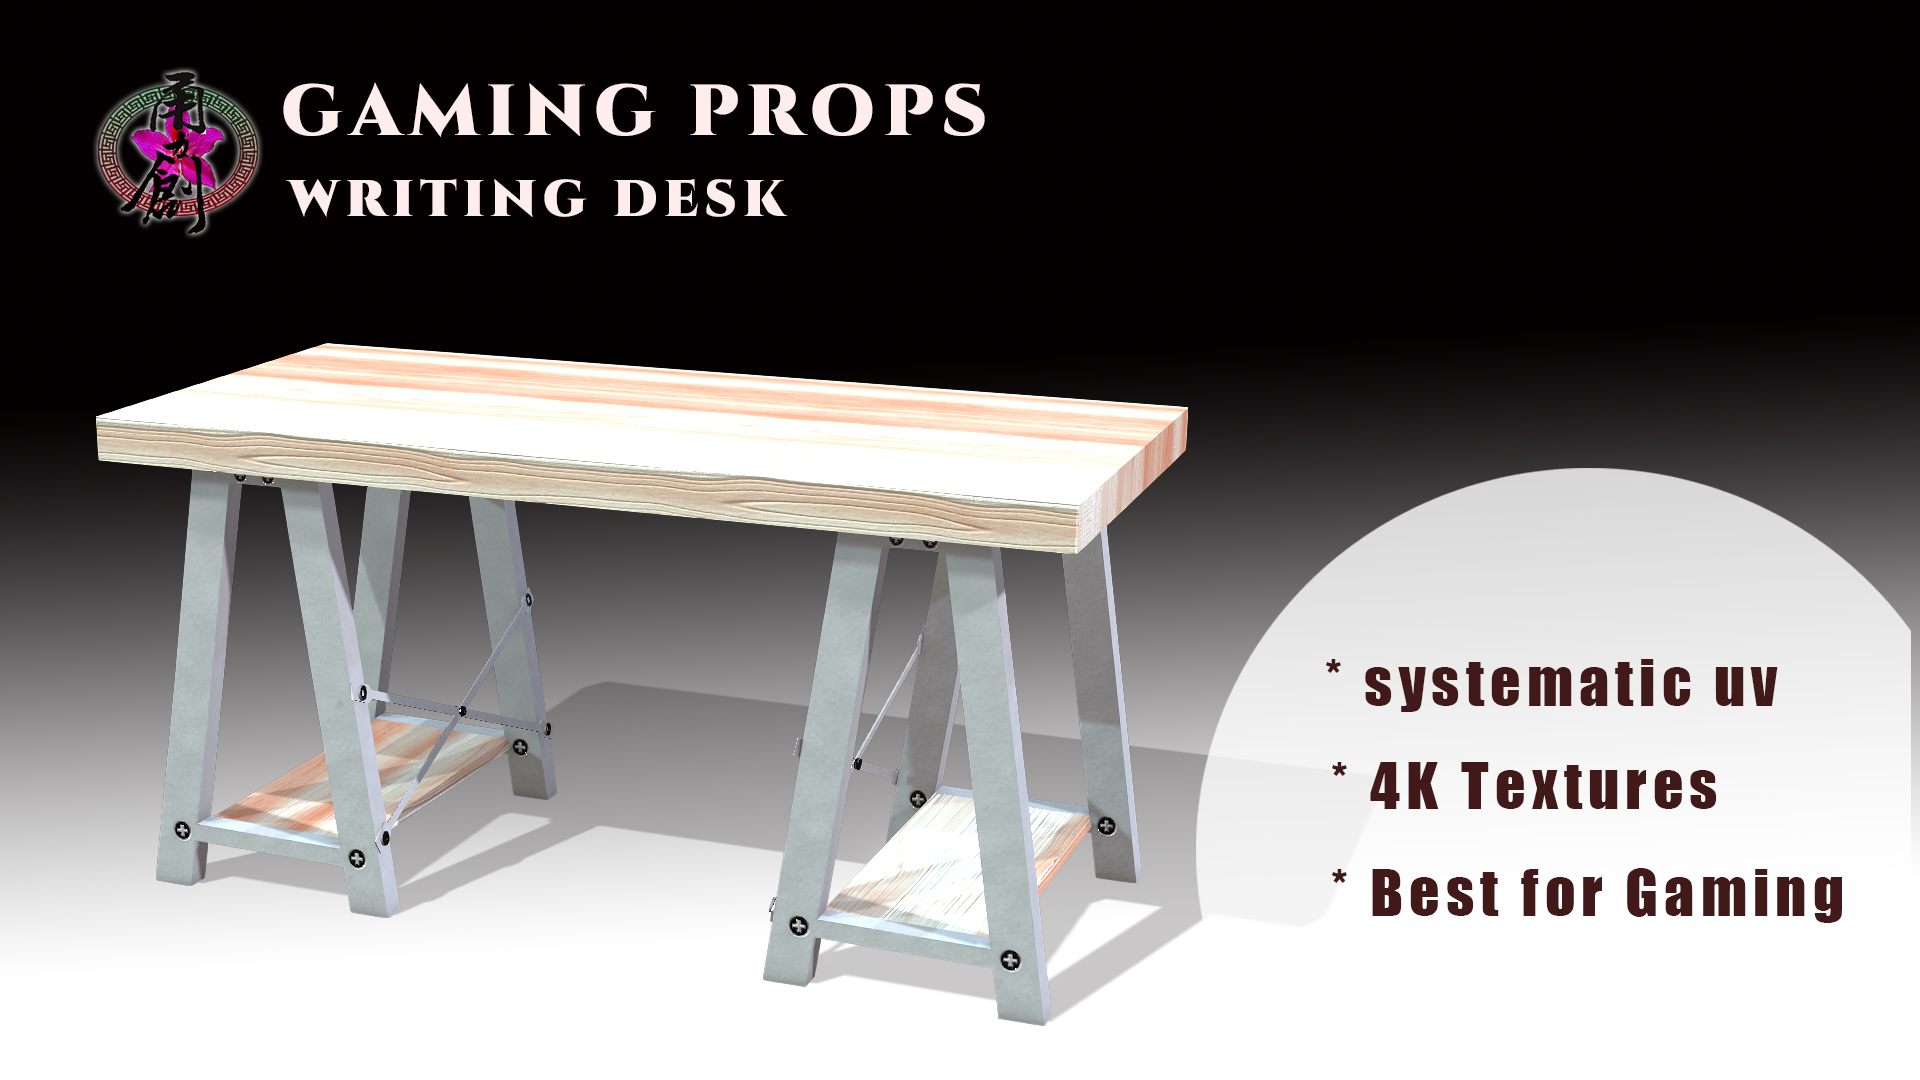 Gaming Props - Writing Desk